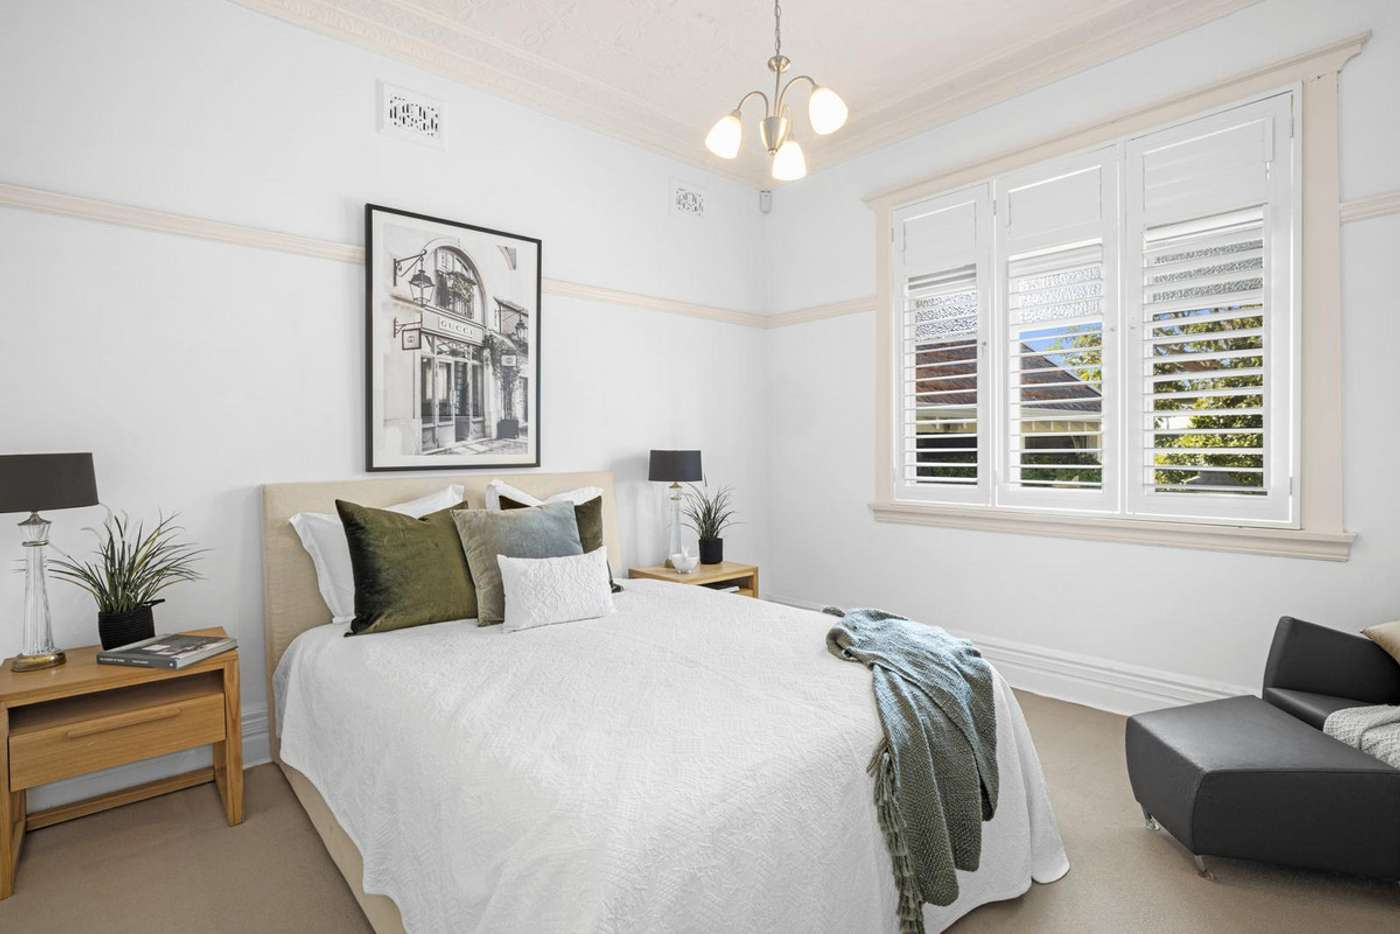 Sixth view of Homely house listing, 24 Thompson Street, Mosman NSW 2088